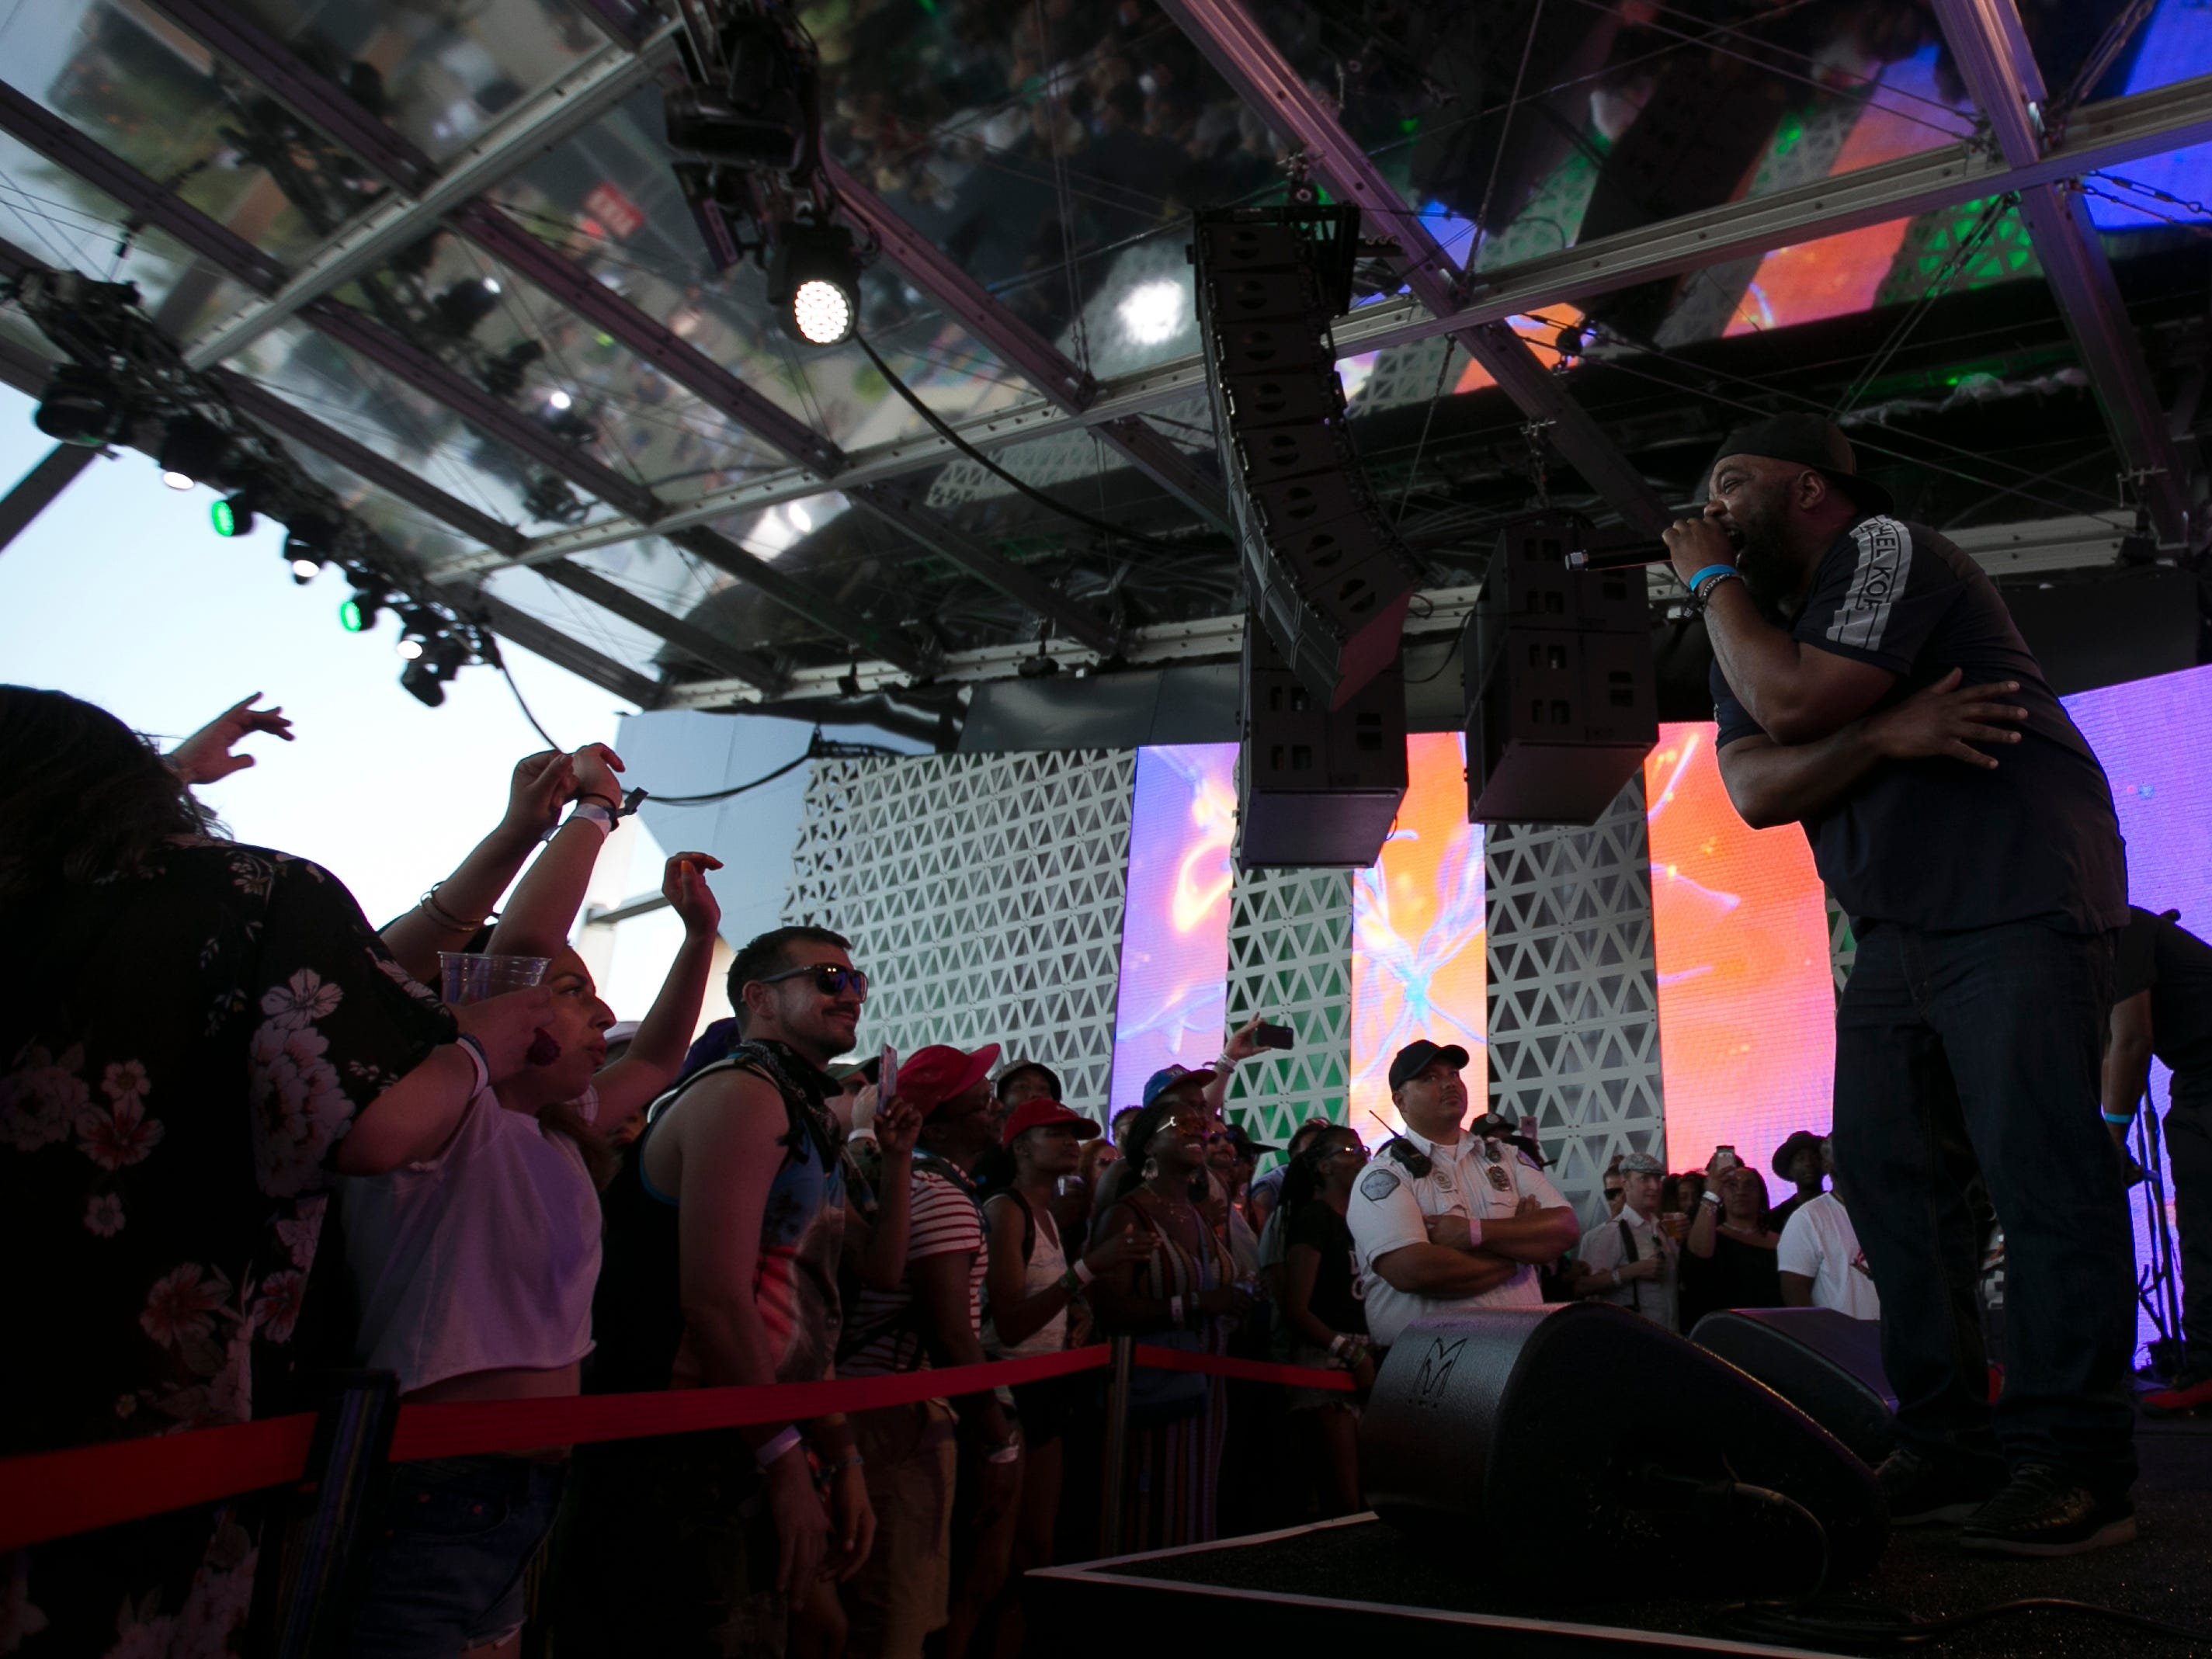 De La Soul performs at the Heineken House at the Coachella Valley Music and Arts Festival in Indio, Calif., on Saturday, April 13, 2019.